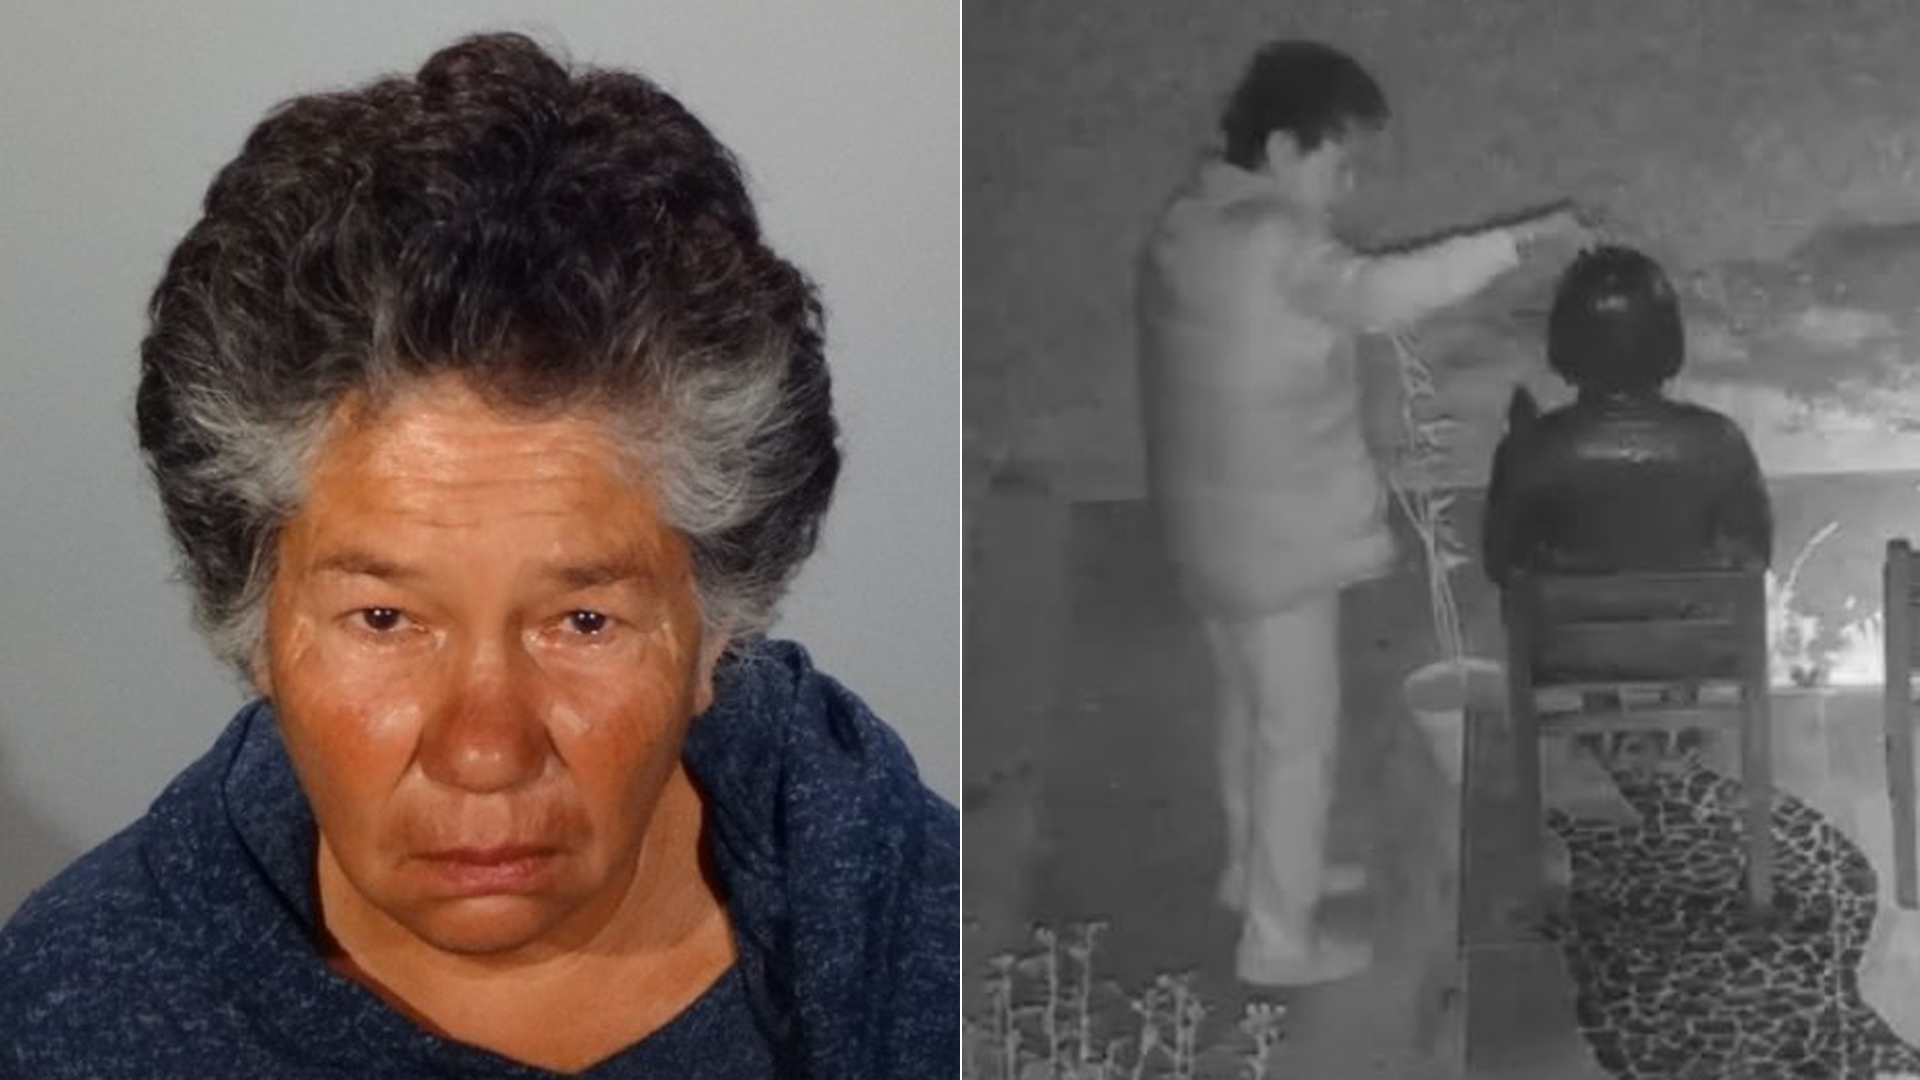 Jackie Rita Williams is shown in a booking photo released by the Glendale Police Department on Sept. 27, 2019. She was arrested in connection with the vandalism of the Glendale Korean Comfort Woman Monument (seen in surveillance video on the right) on Sept. 26, 2019.